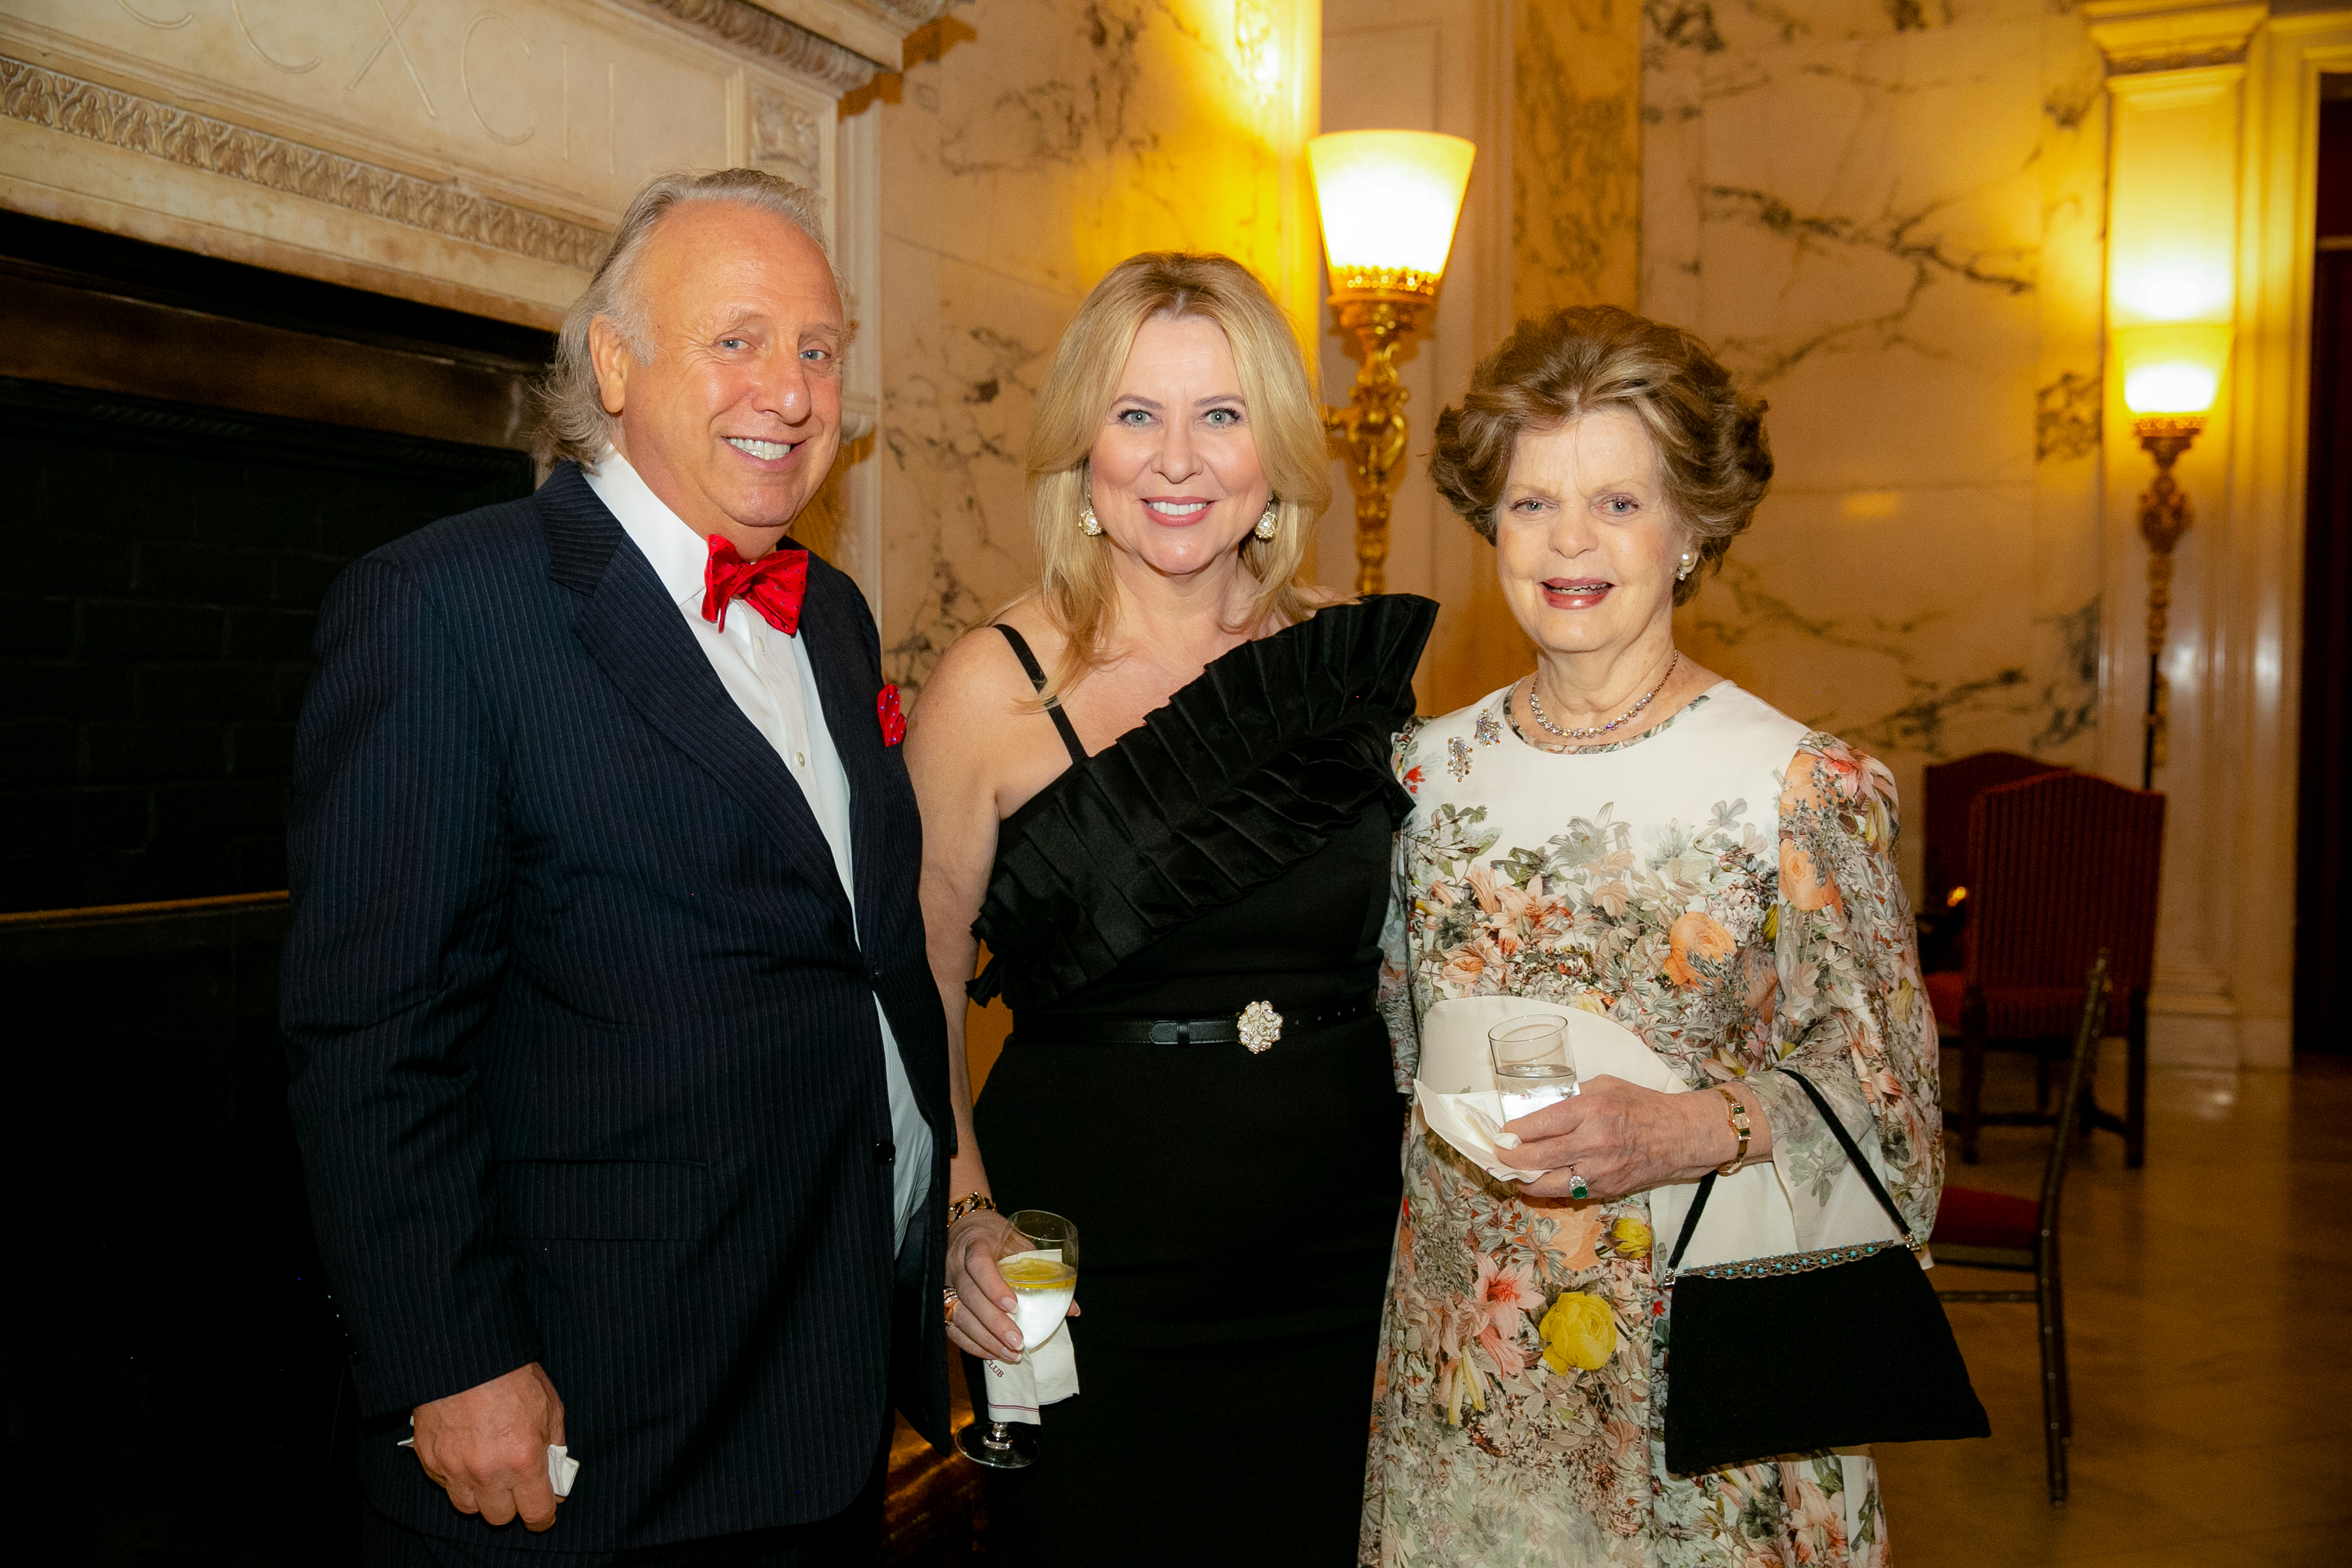 Dr. Legato standing with a man and woman at the 2019 Gala